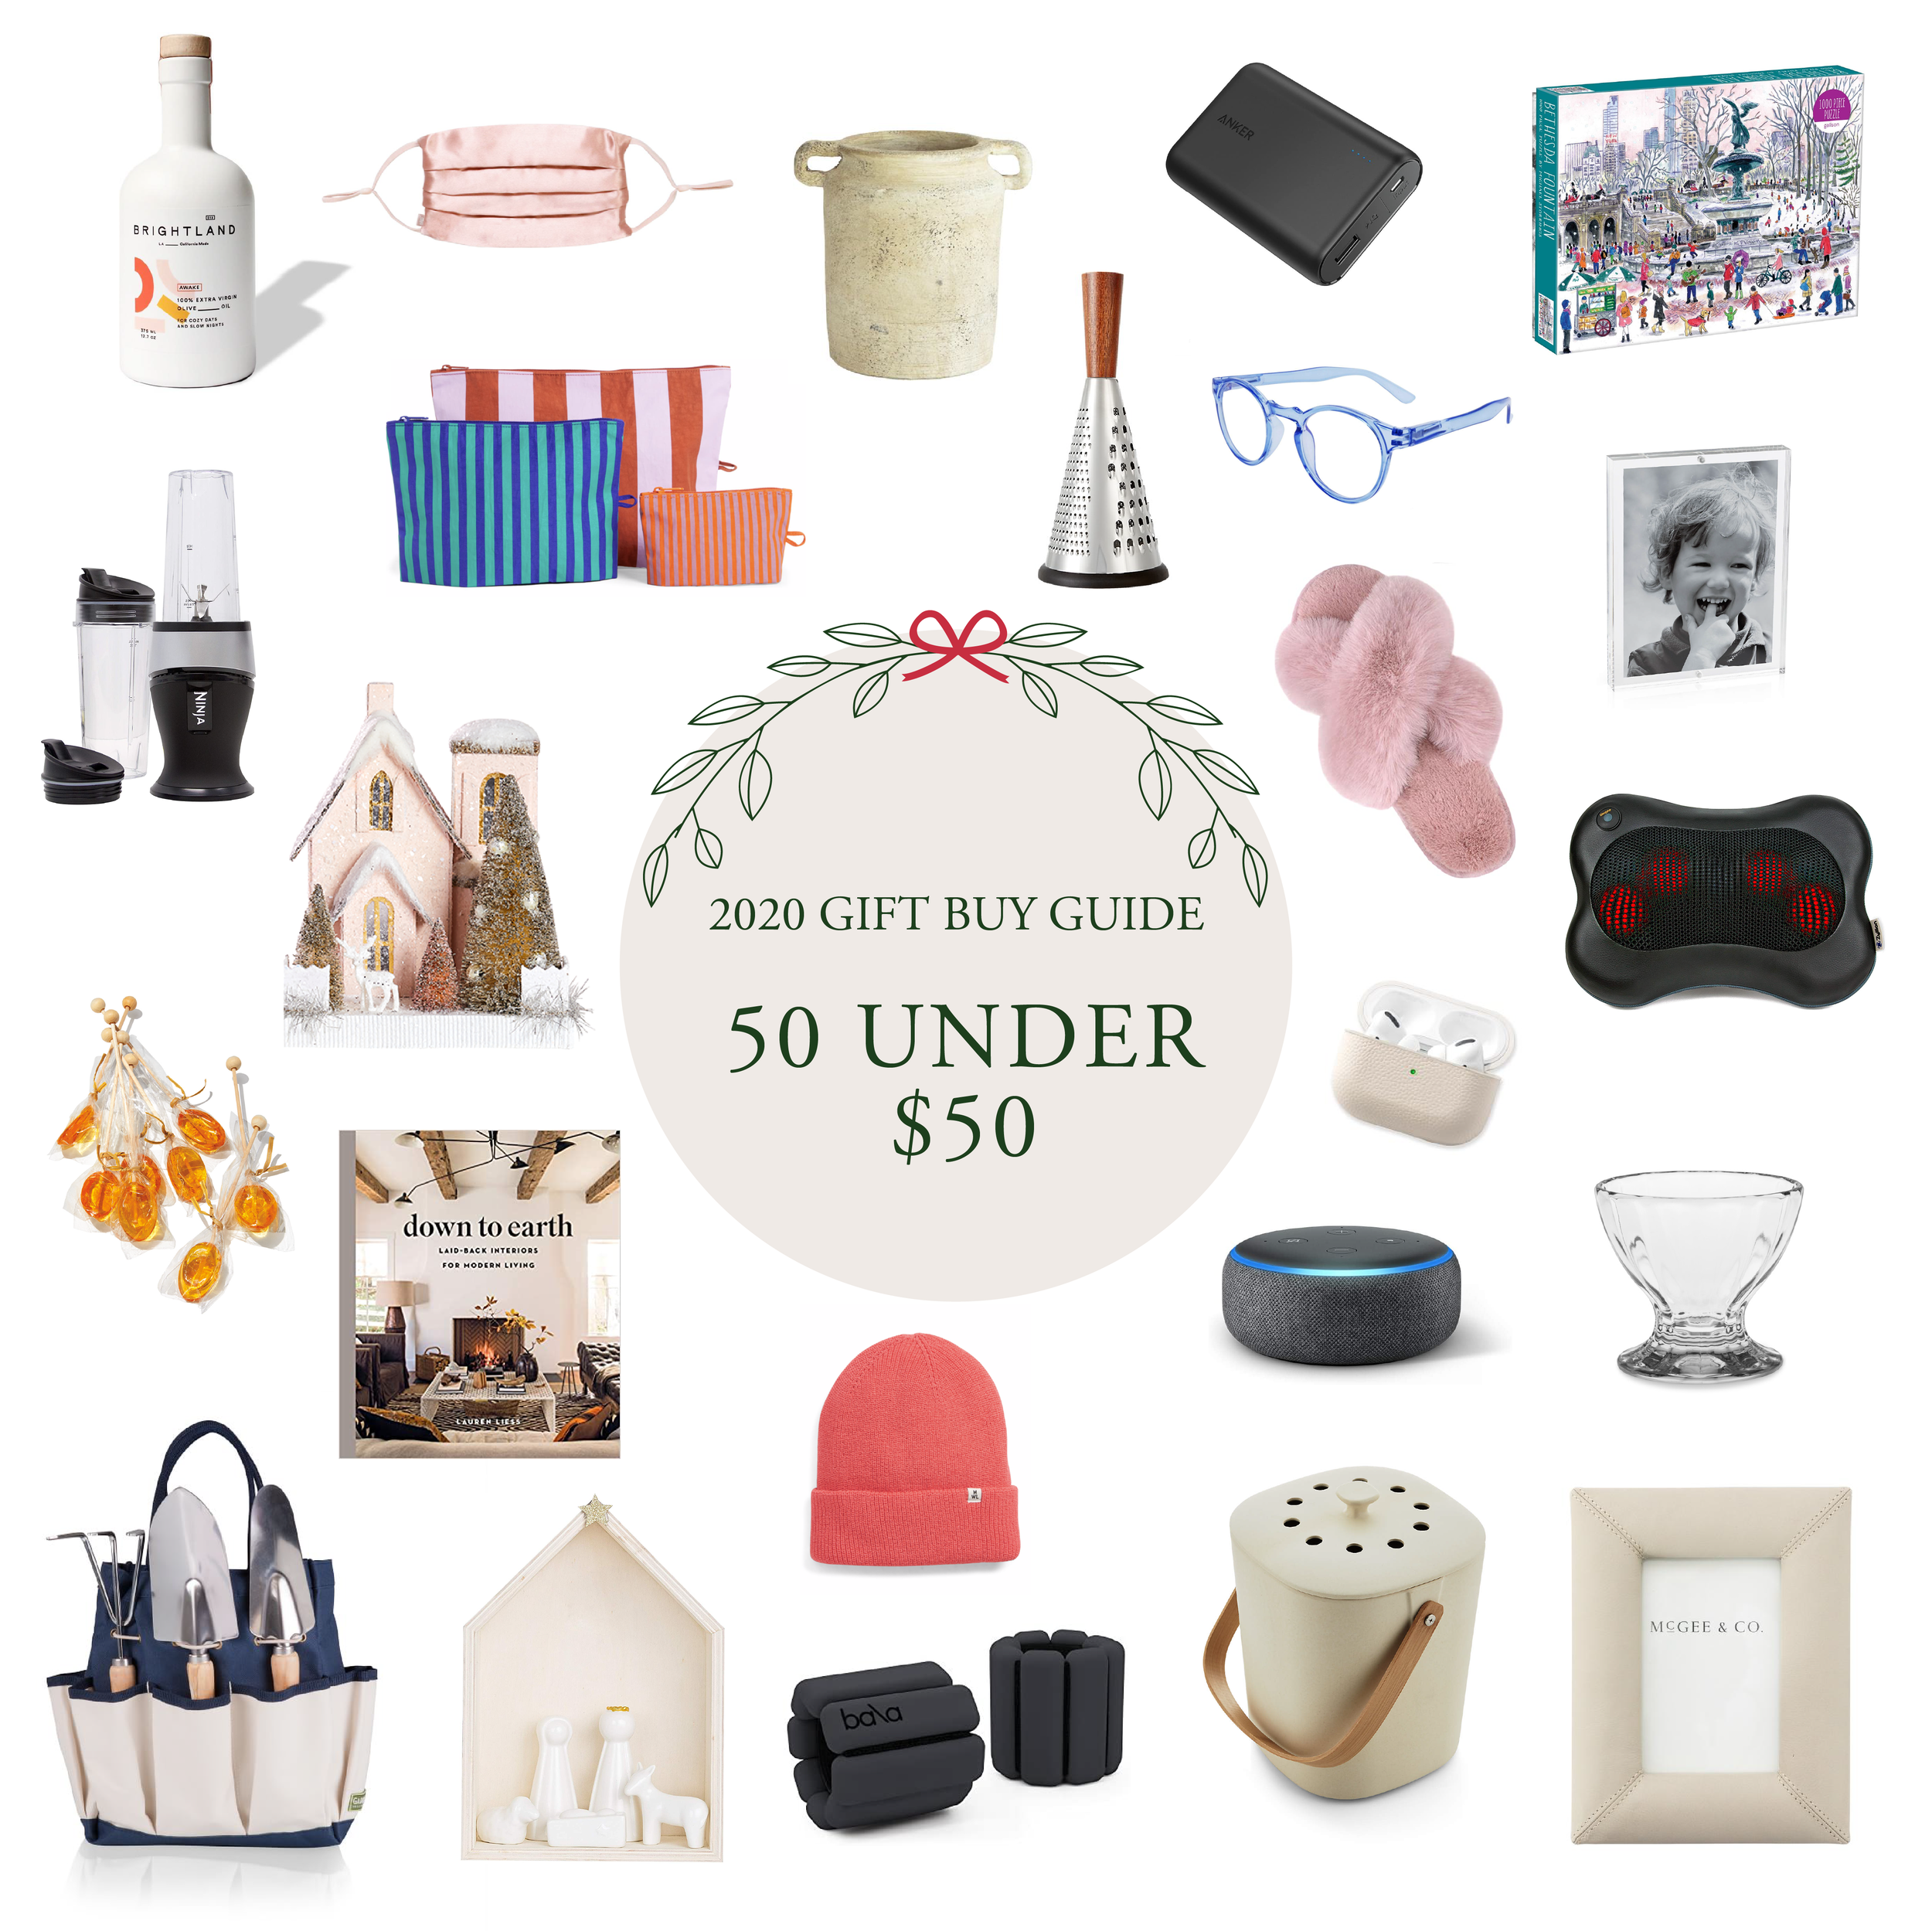 20 Gifts Under $20 — The Buy Guide